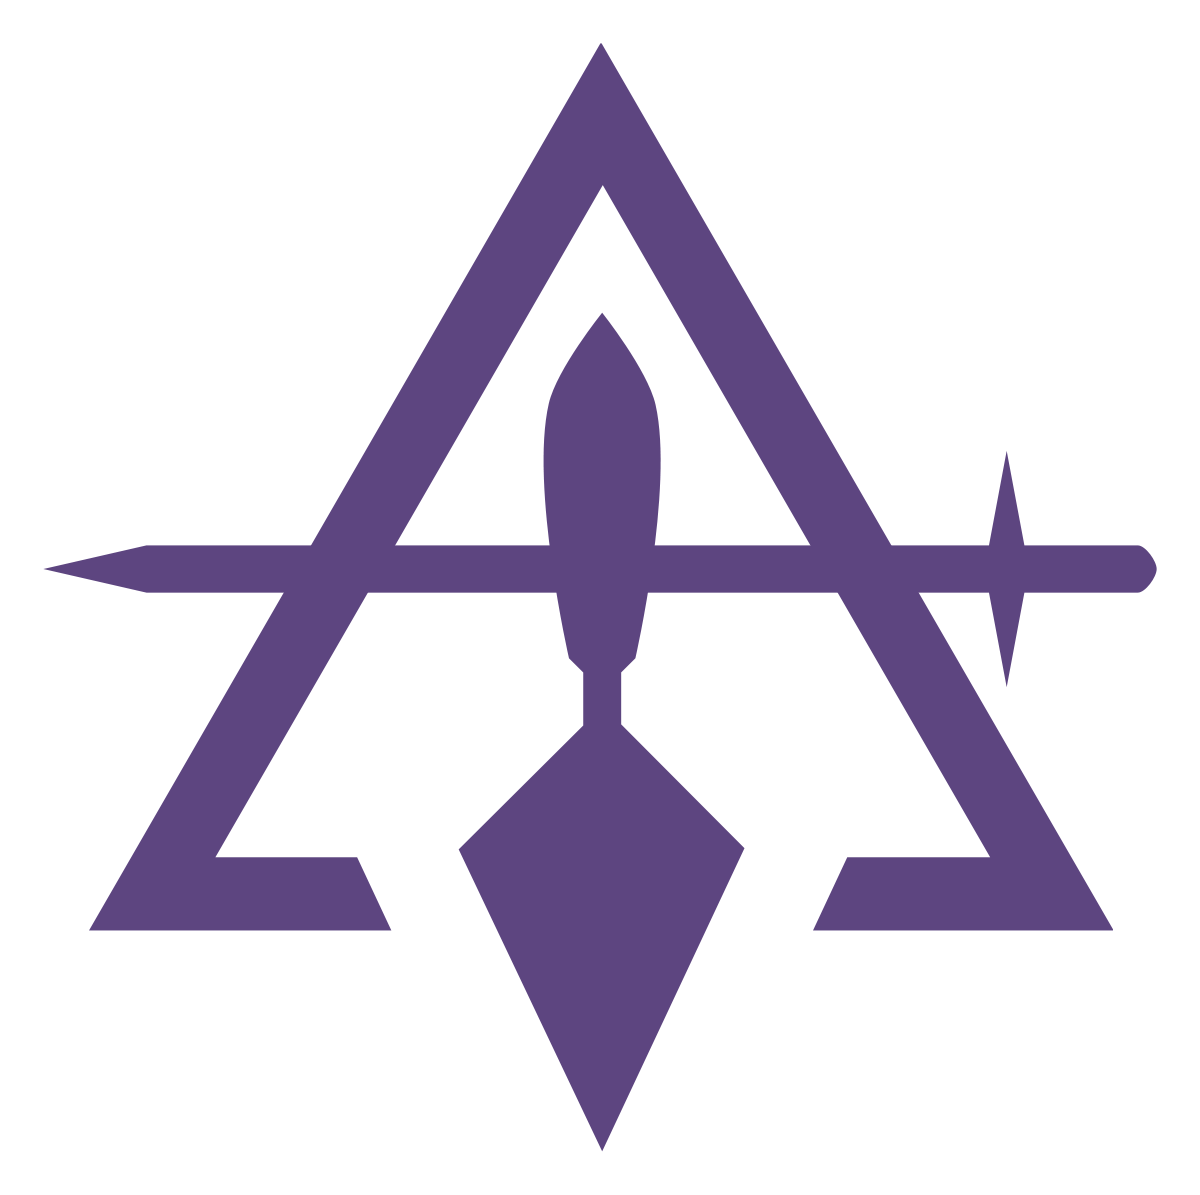 Order of eastern star clipart picture free stock Cryptic Masonry - Wikipedia picture free stock